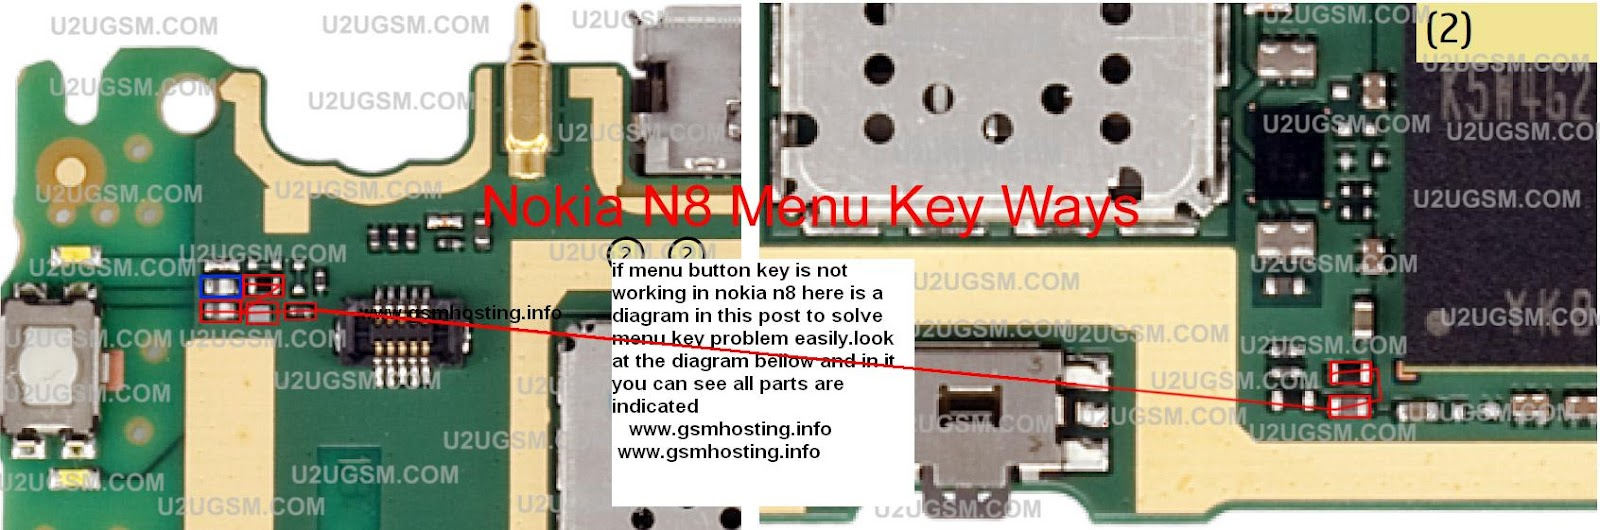 if menu button key is not working in nokia n8 here is a diagram in